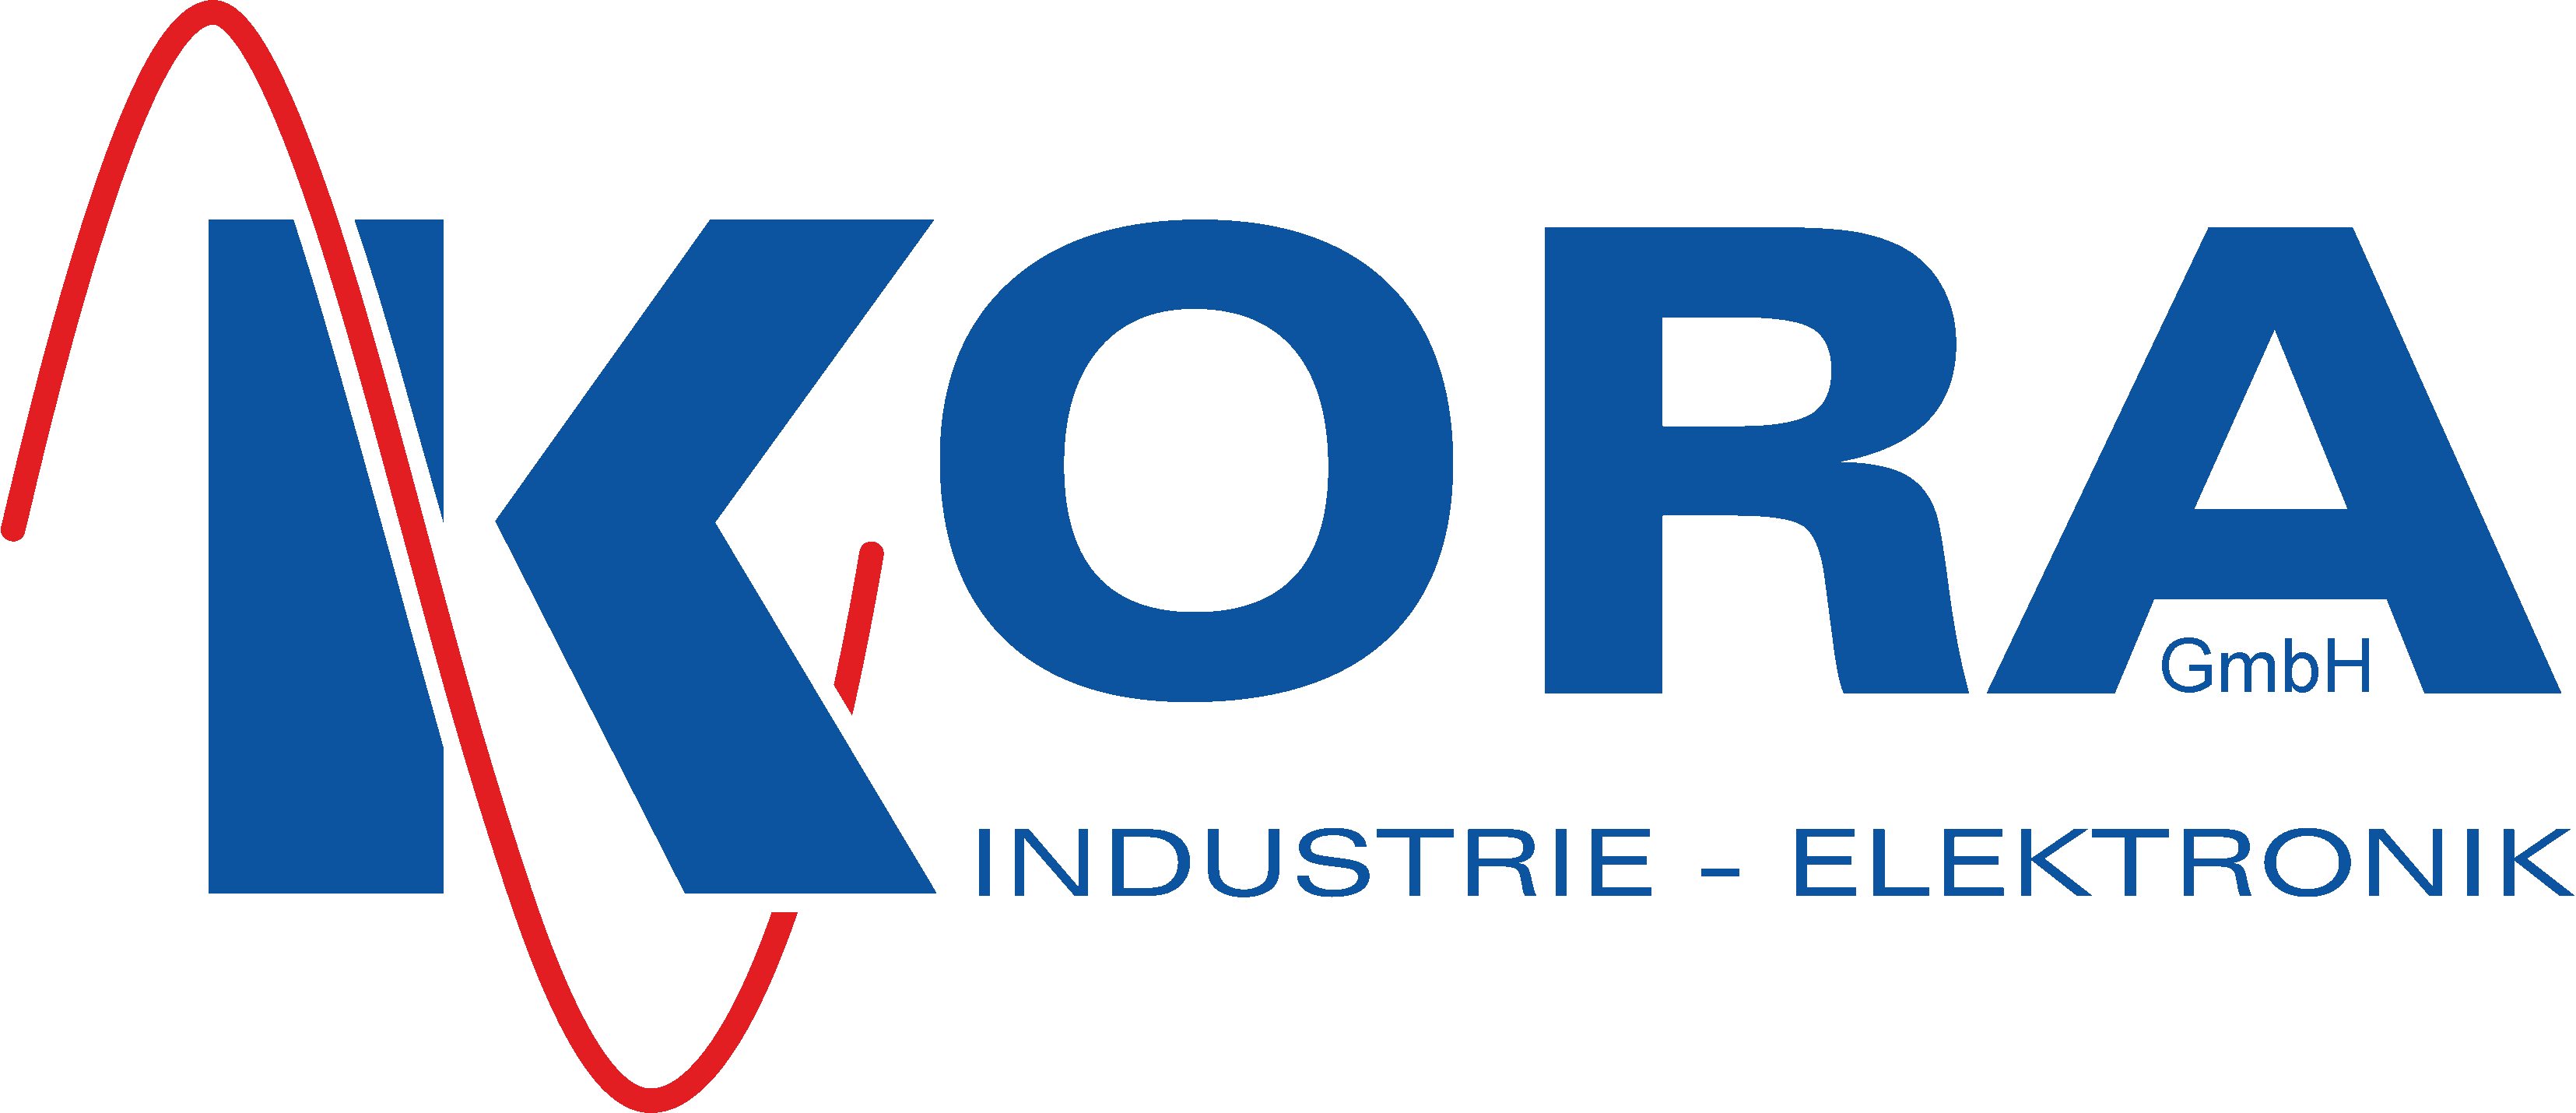 KORA Industrie-Elektronik